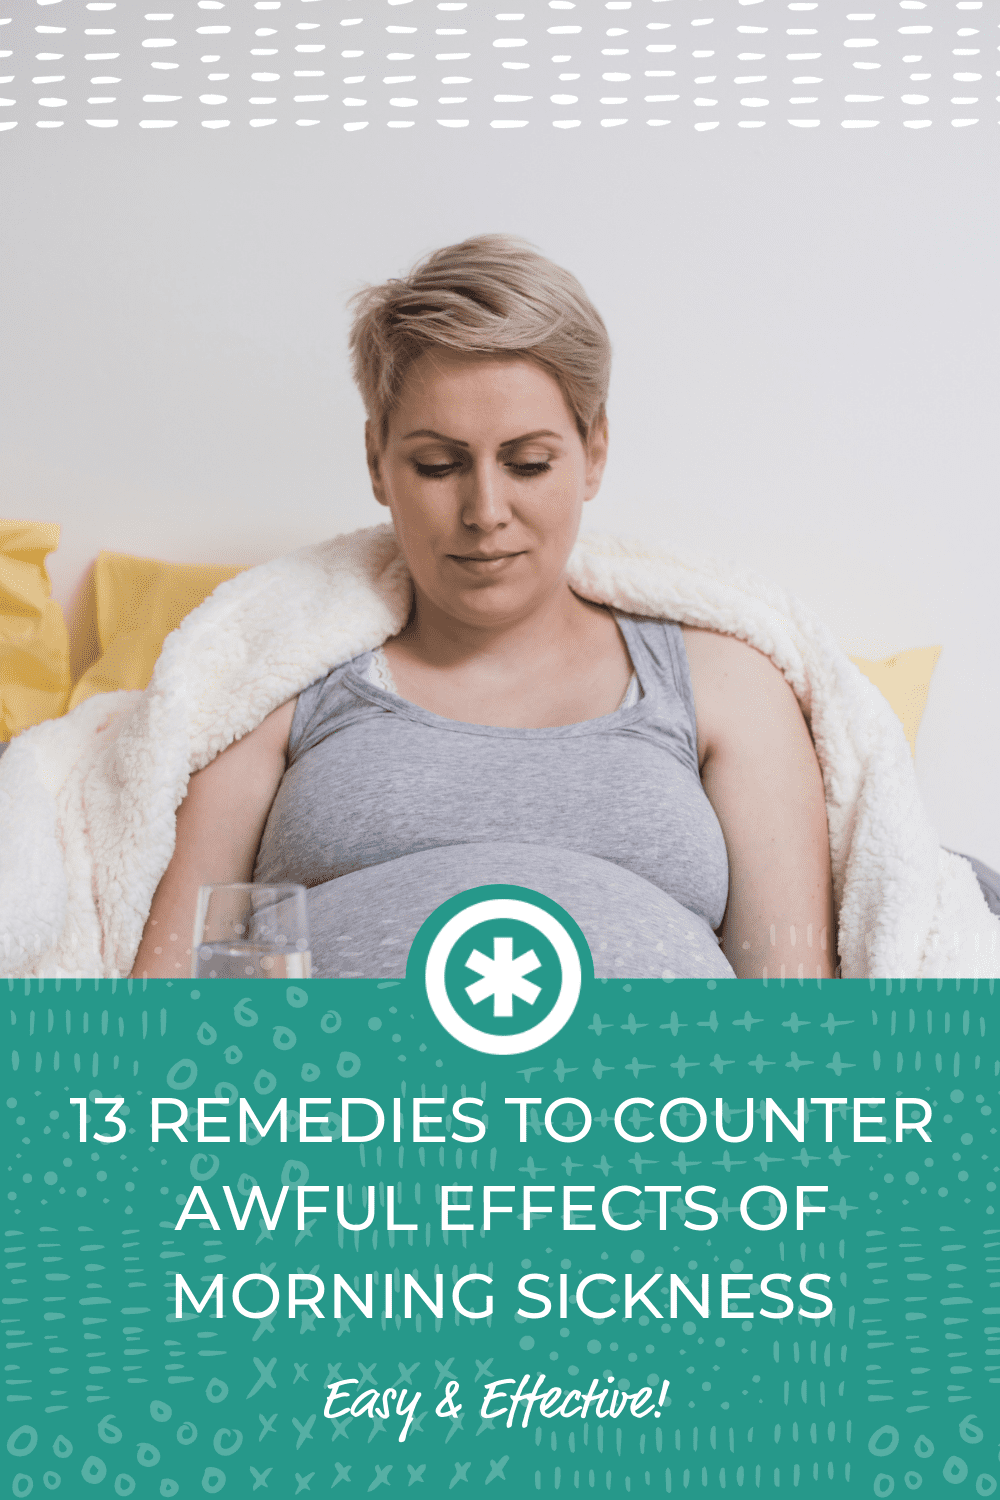 13 Remedies to COUNTER AWFUL effects of Morning Sickness